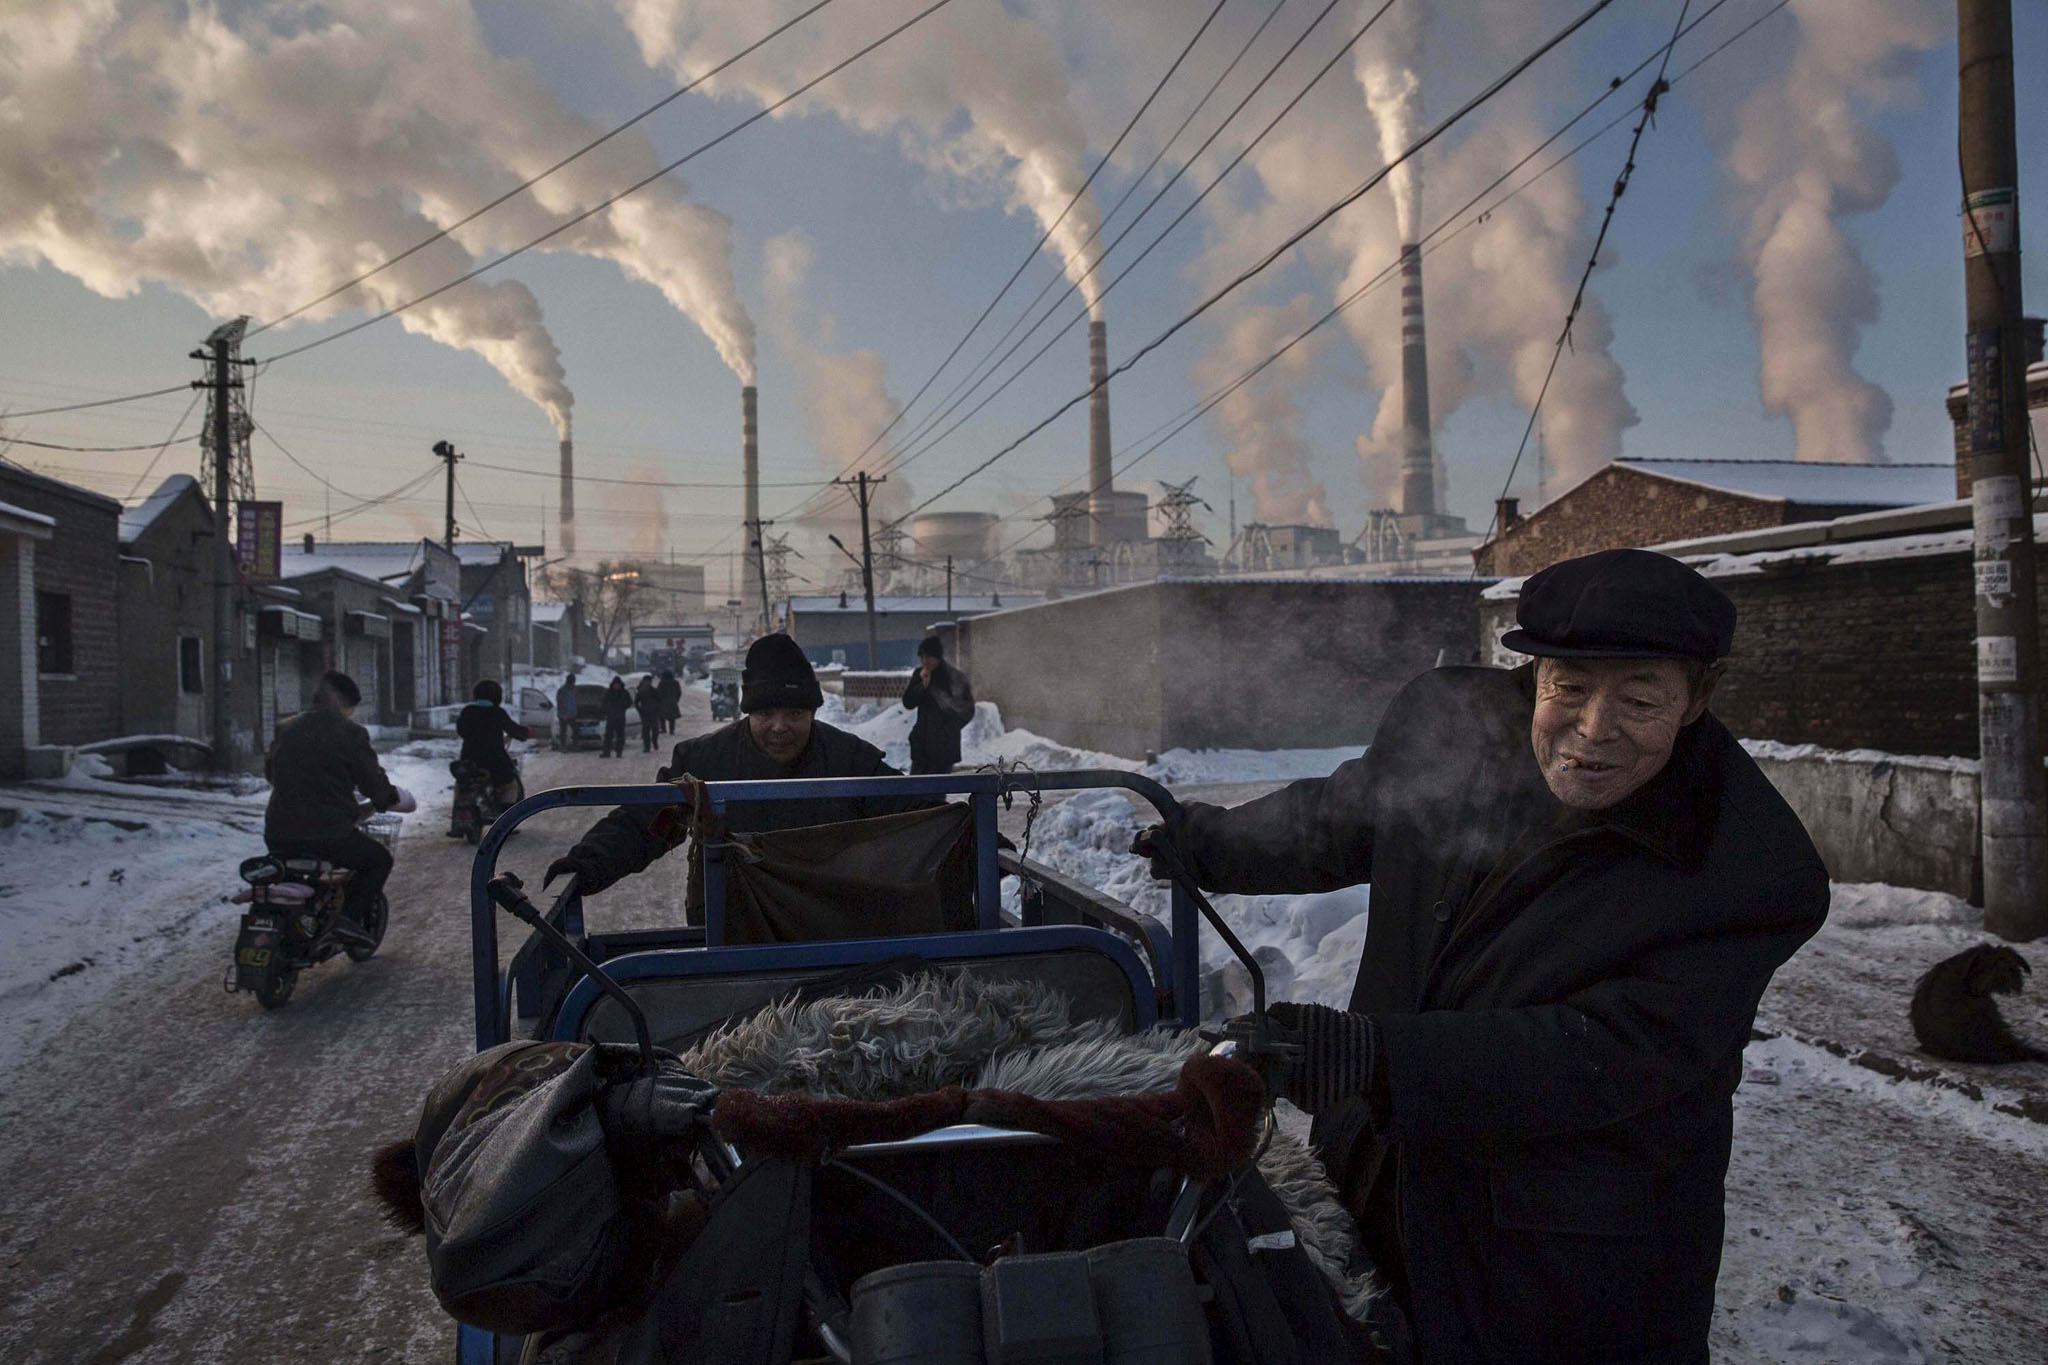 Daily Life, 1st prize singles, World Press Photo Awards (Kevin Frayer - China's Coal Addiction)Chinese men pull a tricycle in a neighborhood next to a coal-fired power plant in Shanxi, China, November 26, 2015